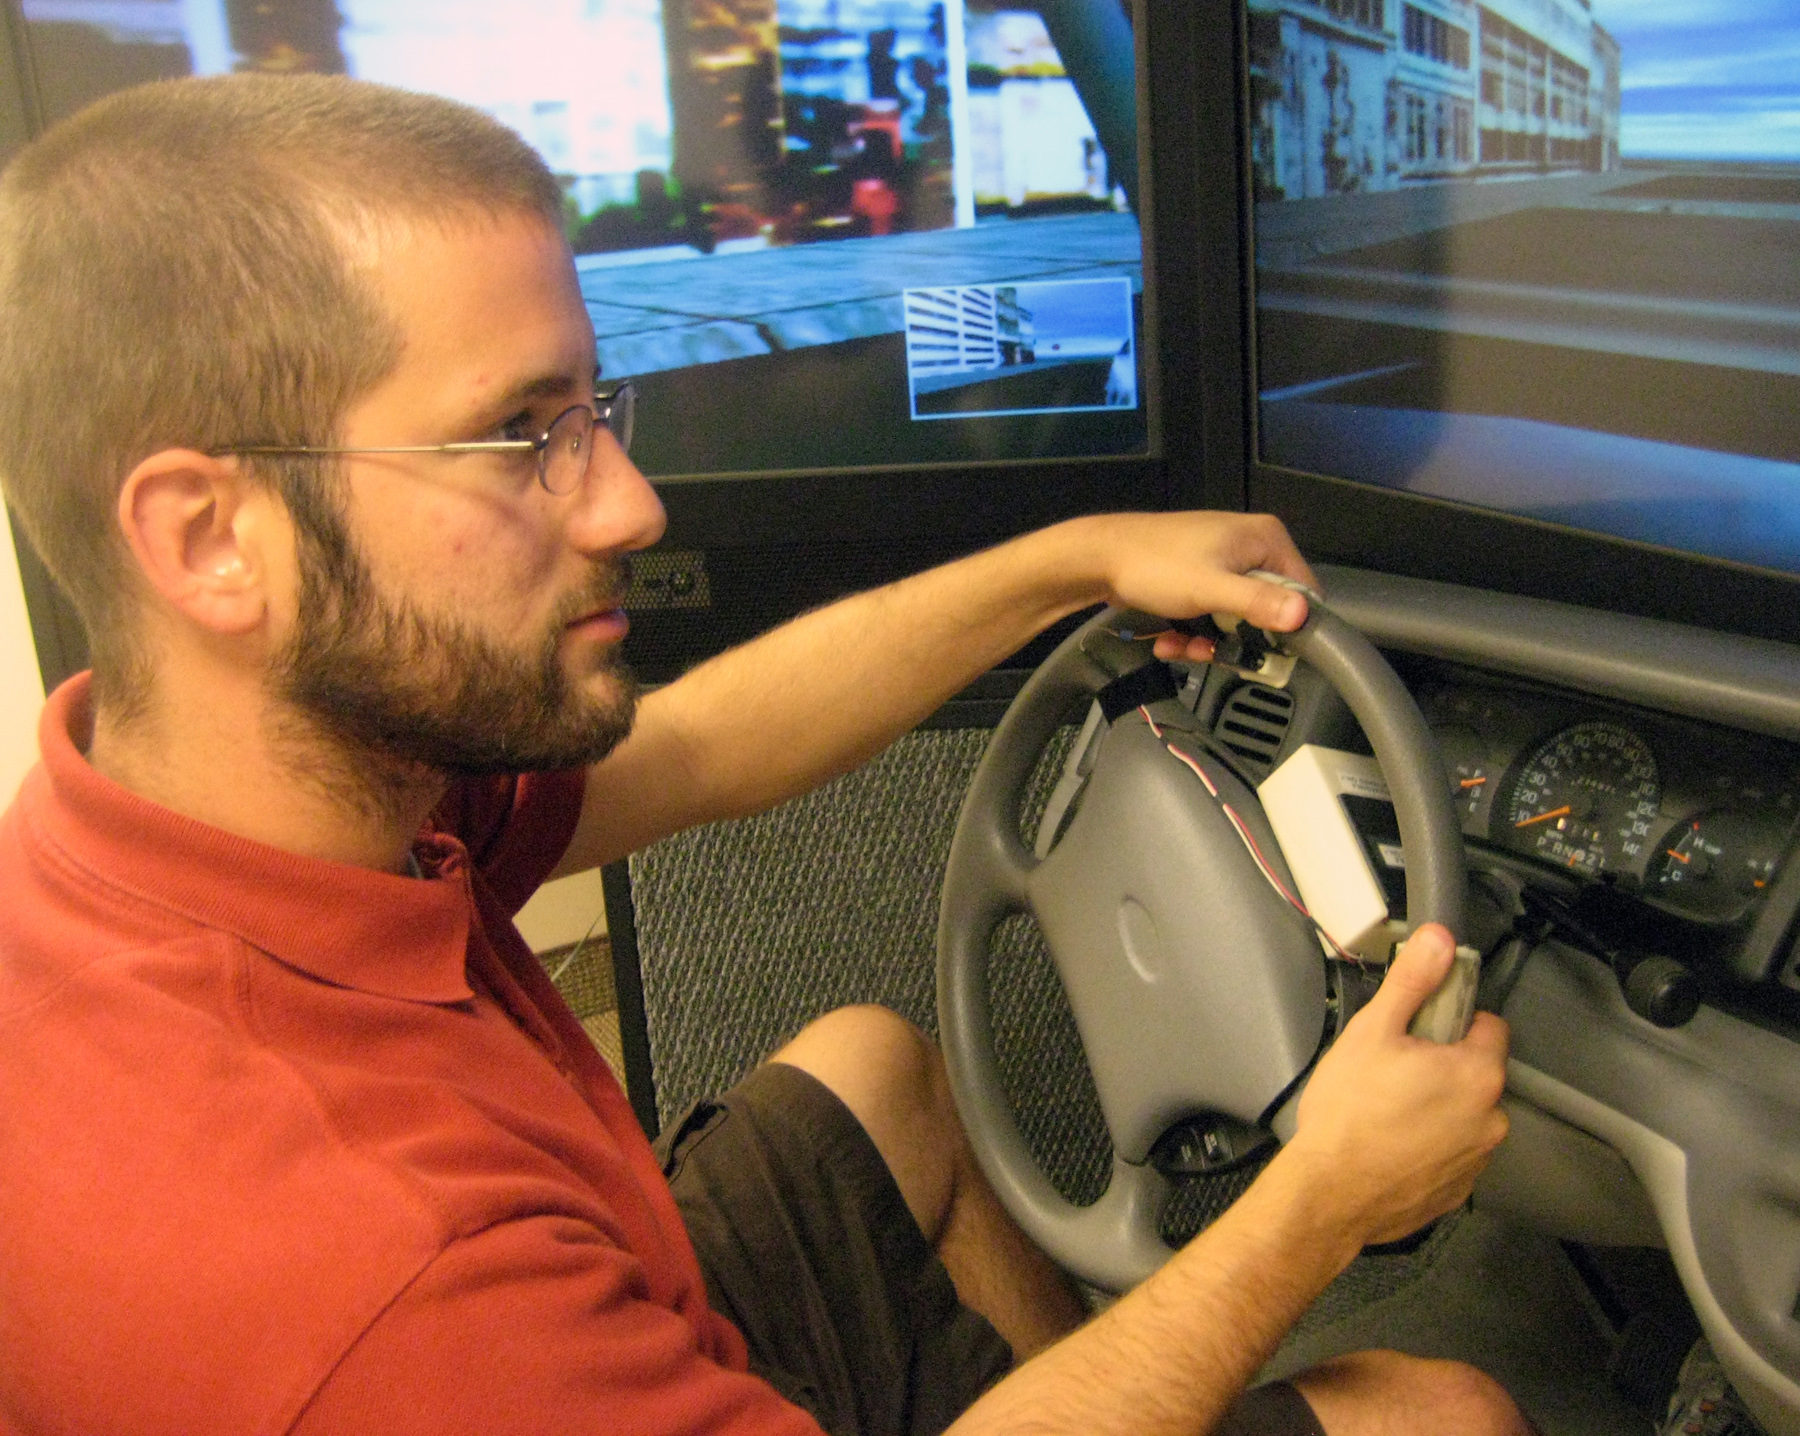 Nate Medeiros-Ward, a University of Utah psychology doctoral student, operates a driving simulator with a steering wheel equipped with two touch devices that pull the skin on his index fingertips left or right (counterclockwise or clockwise) to tell him which way to turn. A new University of Utah study found that navigation information can be conveyed to a driver through the fingertips as accurately as through audio instructions from a navigation system. And when drivers are distracted by talking on a cell phone, the fingertip instructions are followed more accurately than audio instructions. The touch-based devices could help improve safety for motorists and hearing-impaired drivers, and also lead to navigational canes that provide navigation information to blind pedestrians.